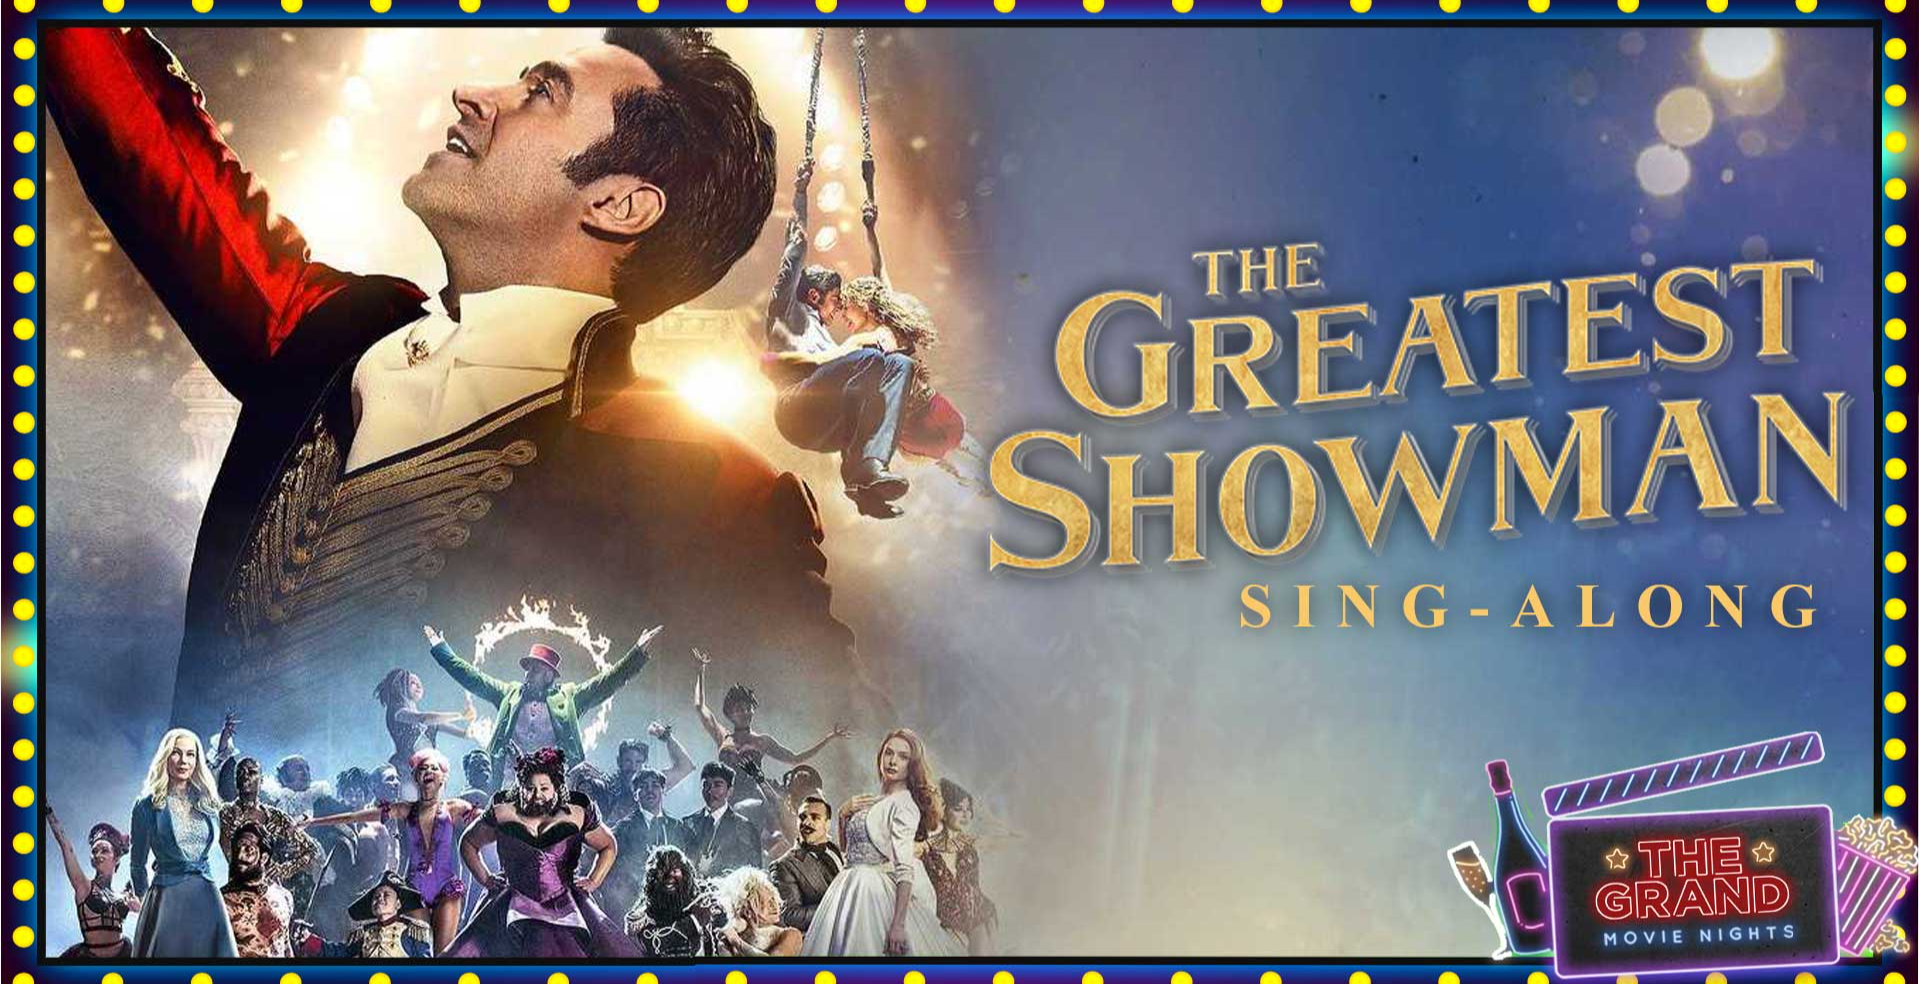 The Greatest Showman Sing-Along Movie Night